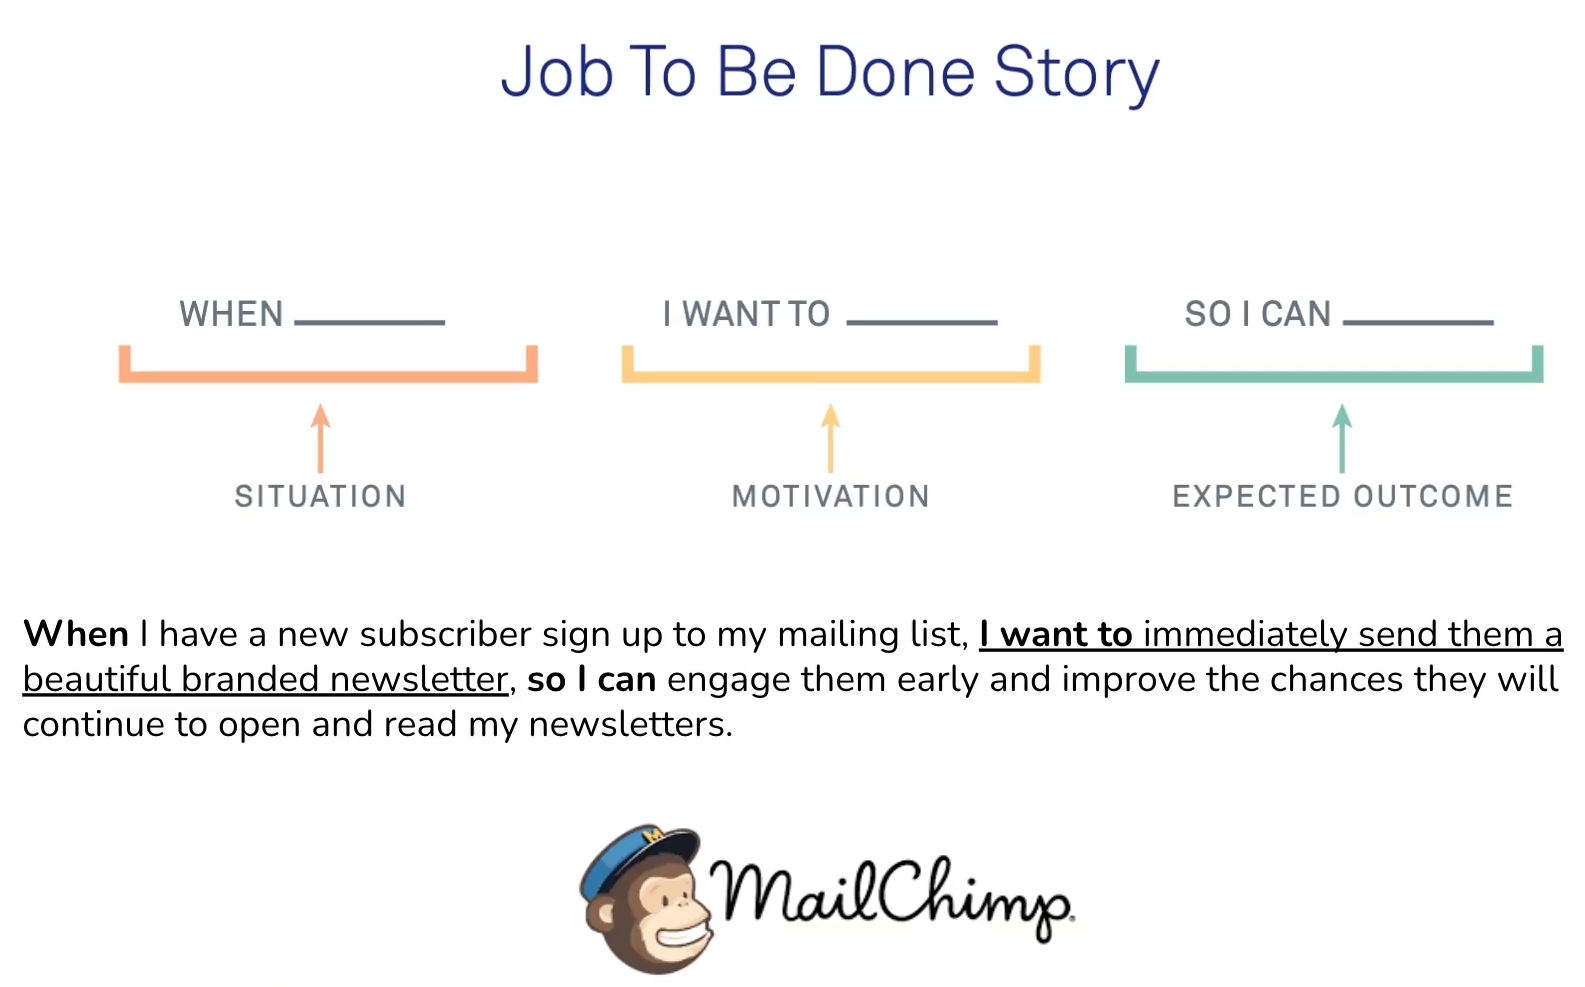 Mailchimp jobs to be done story